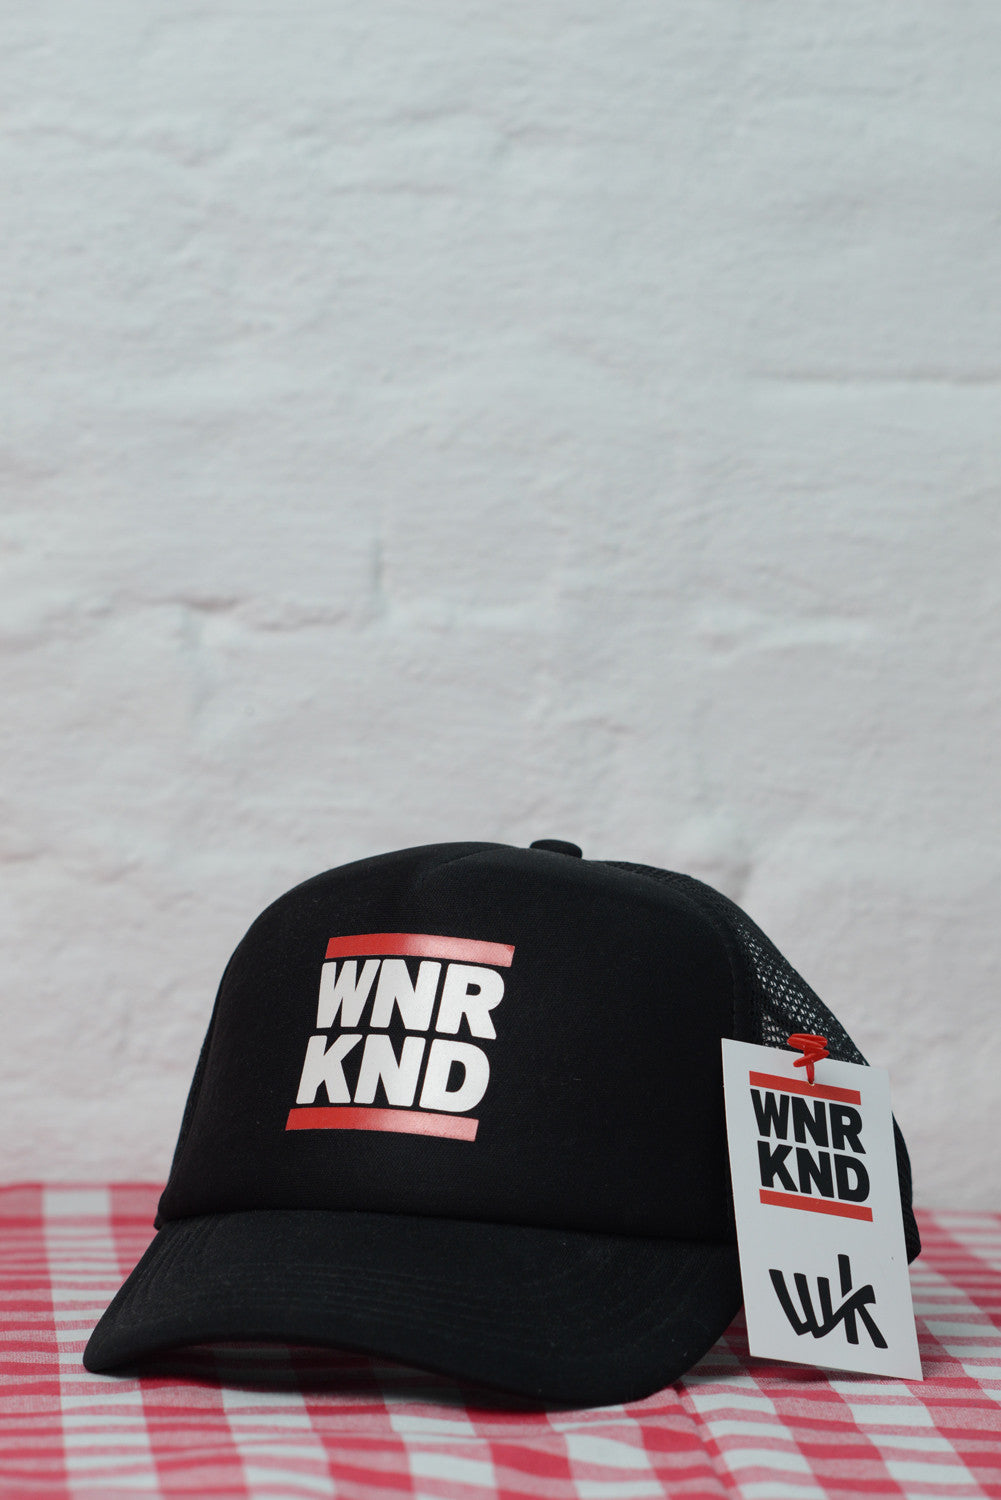 WNRKND Trucker Cap black